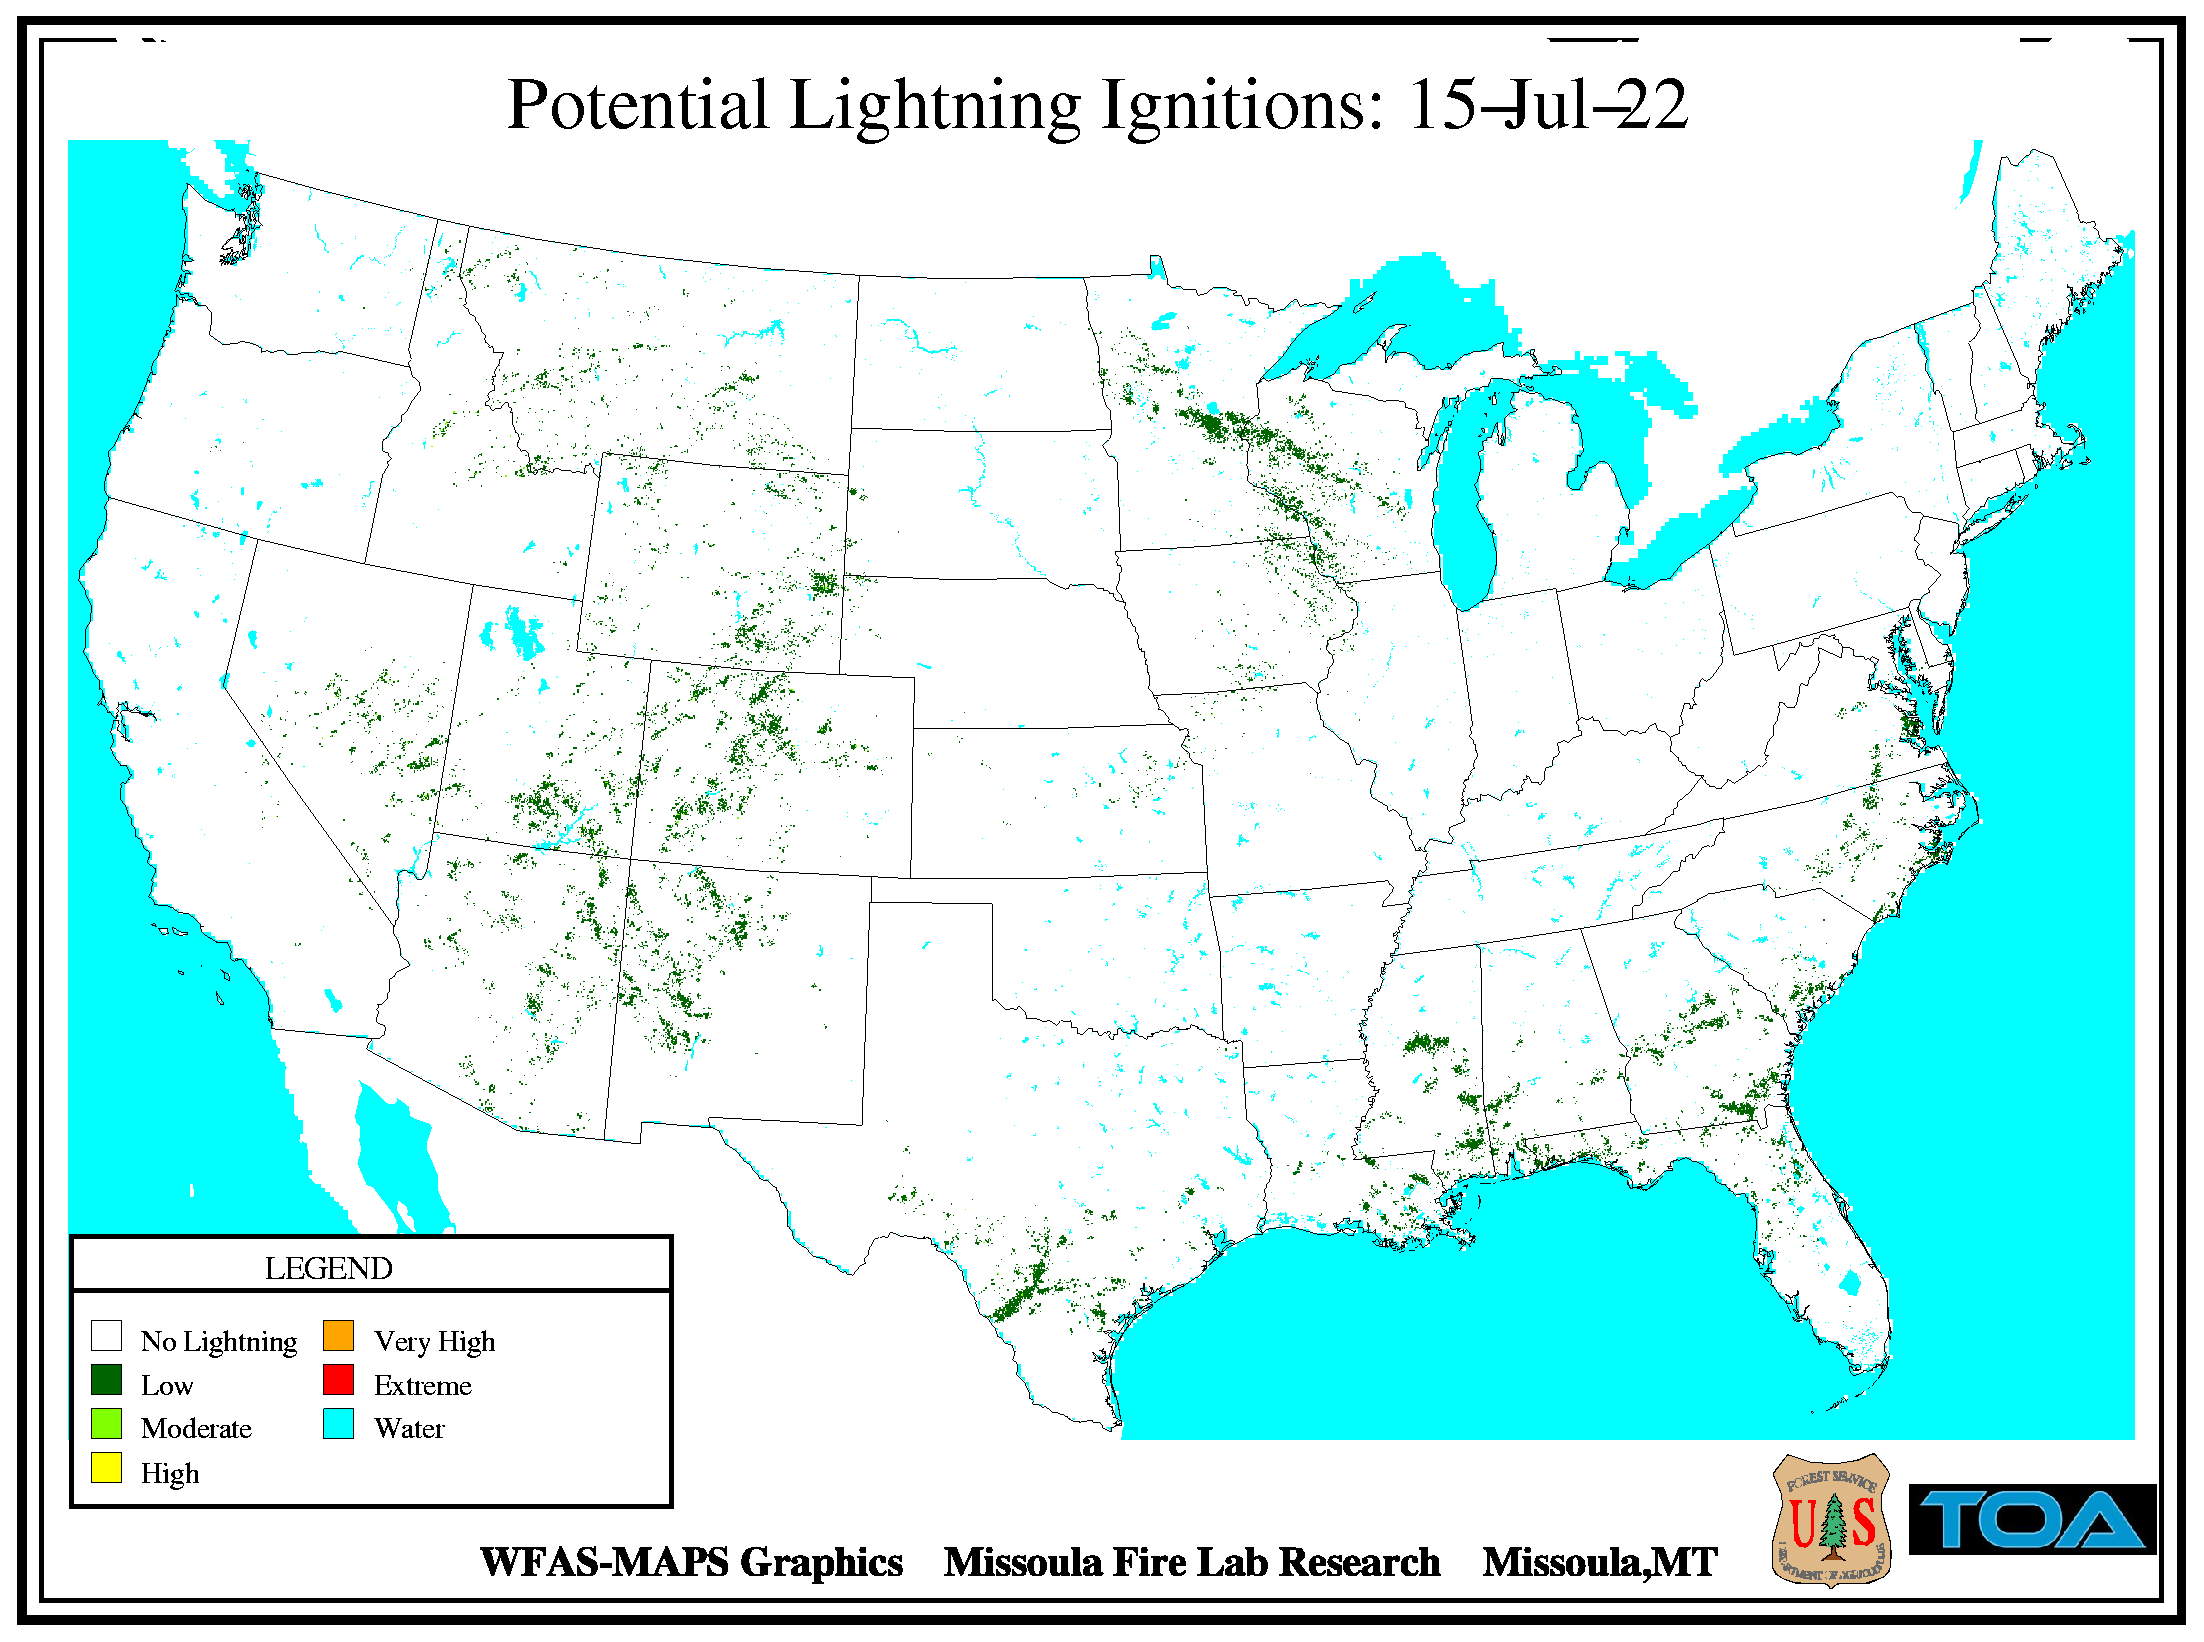 Potential Lightning Ignition Map